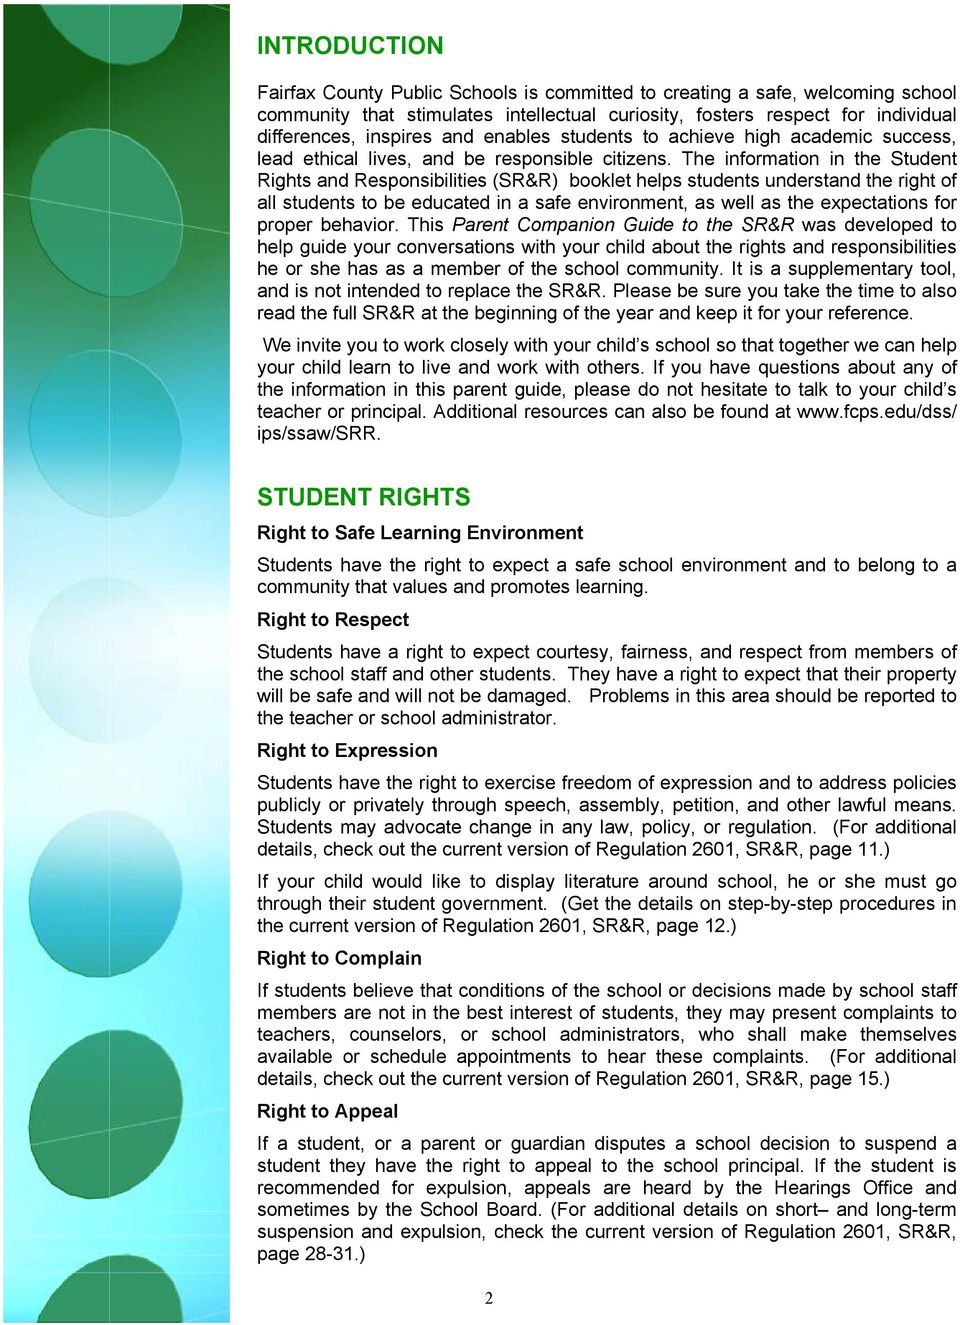 The information in the Student Rights and Responsibilities (SR&R) booklet helps students understand the right of all students to be educated in a safe environment, as well as the expectations for